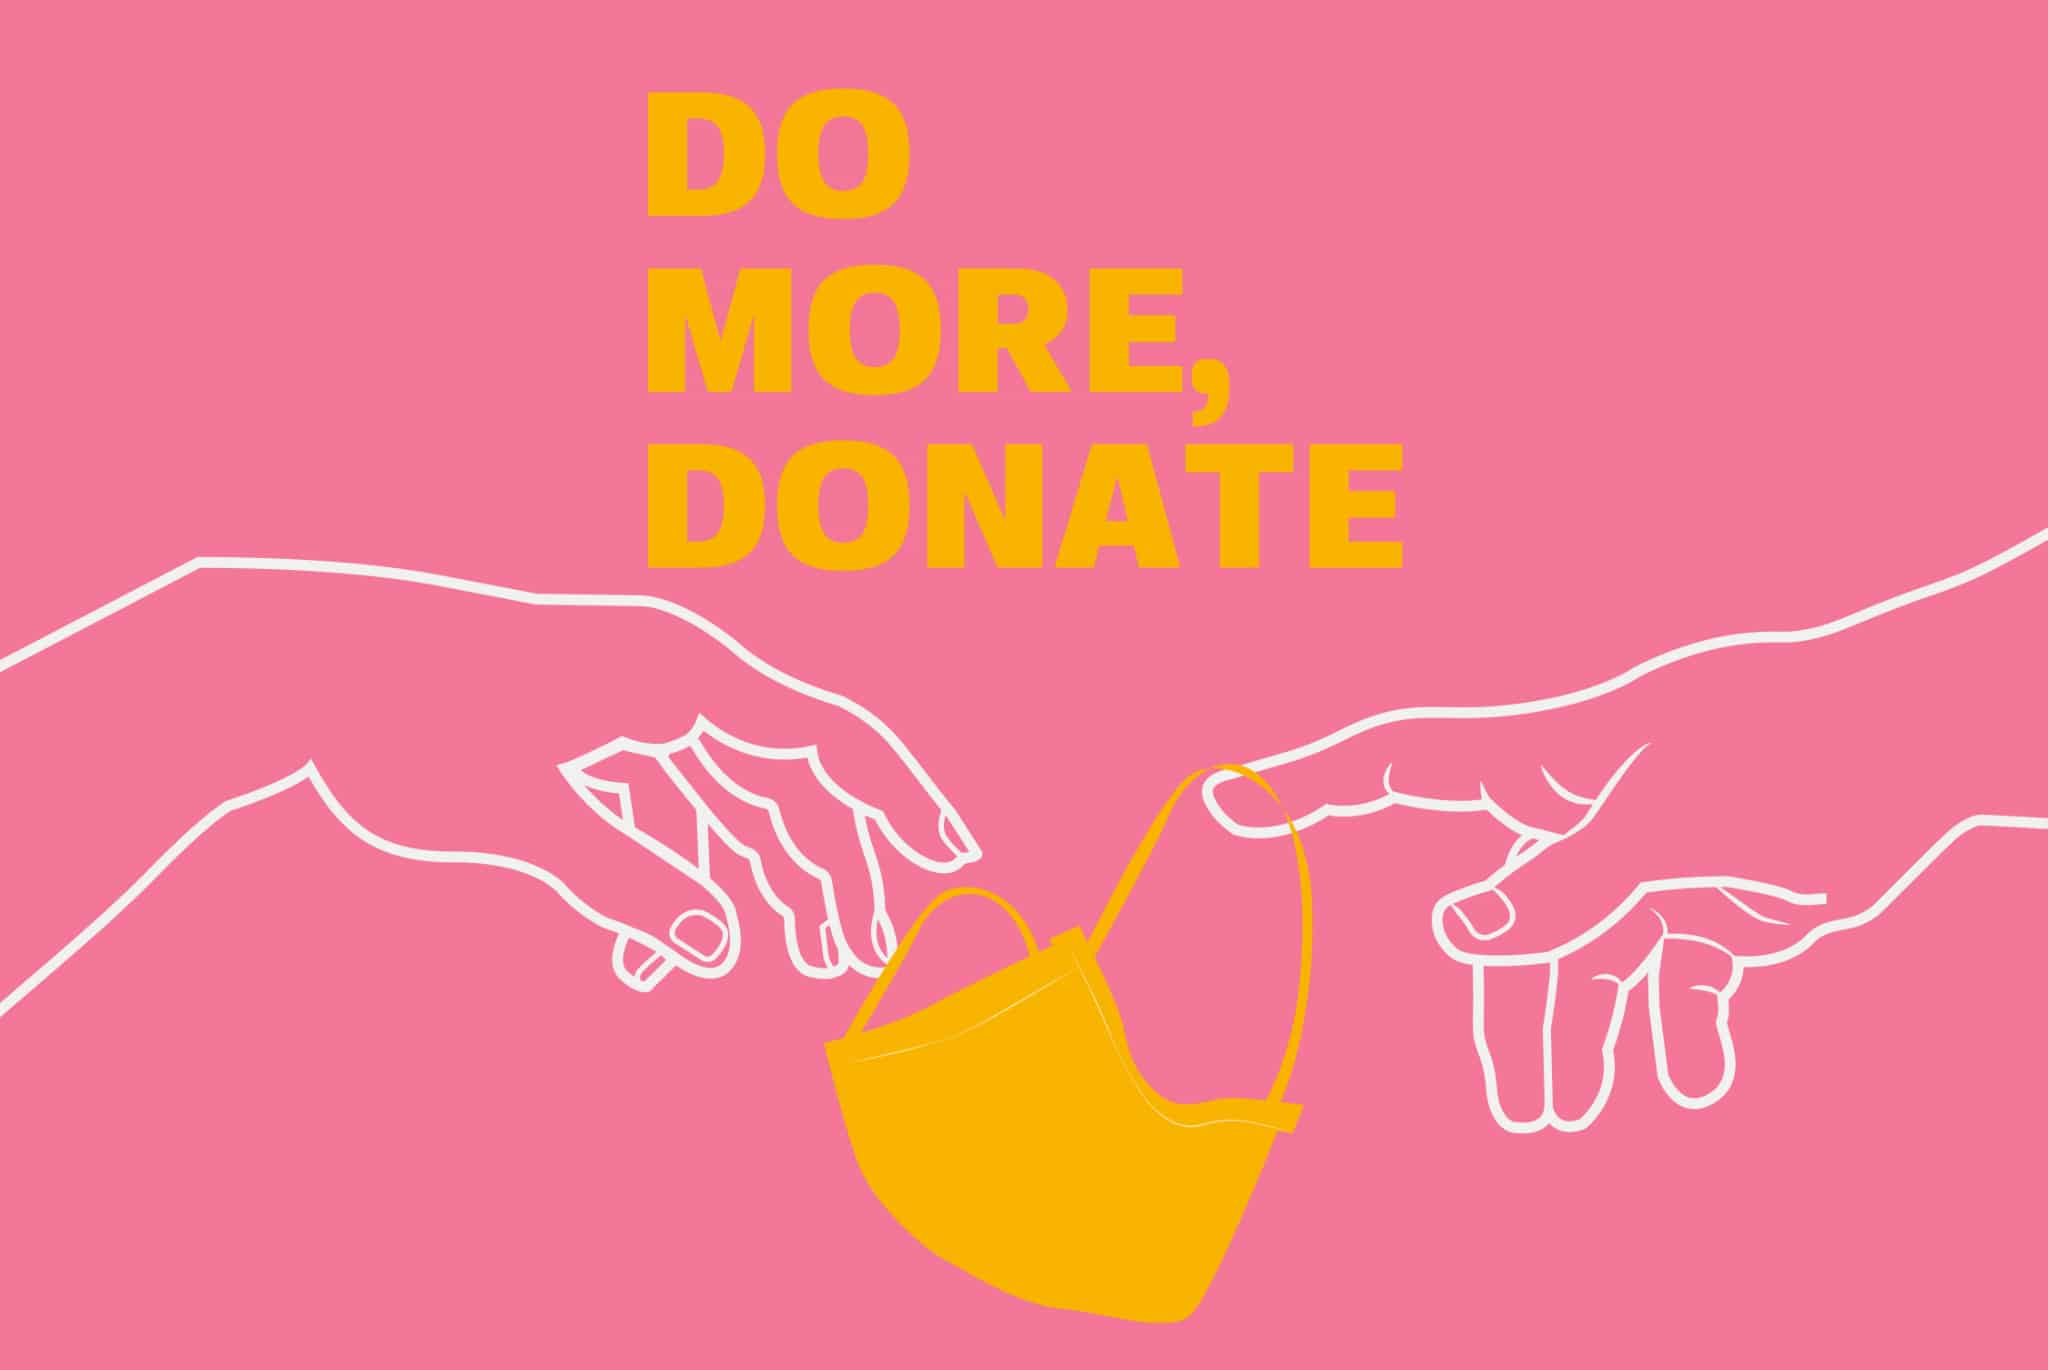 DO MORE, DONATE